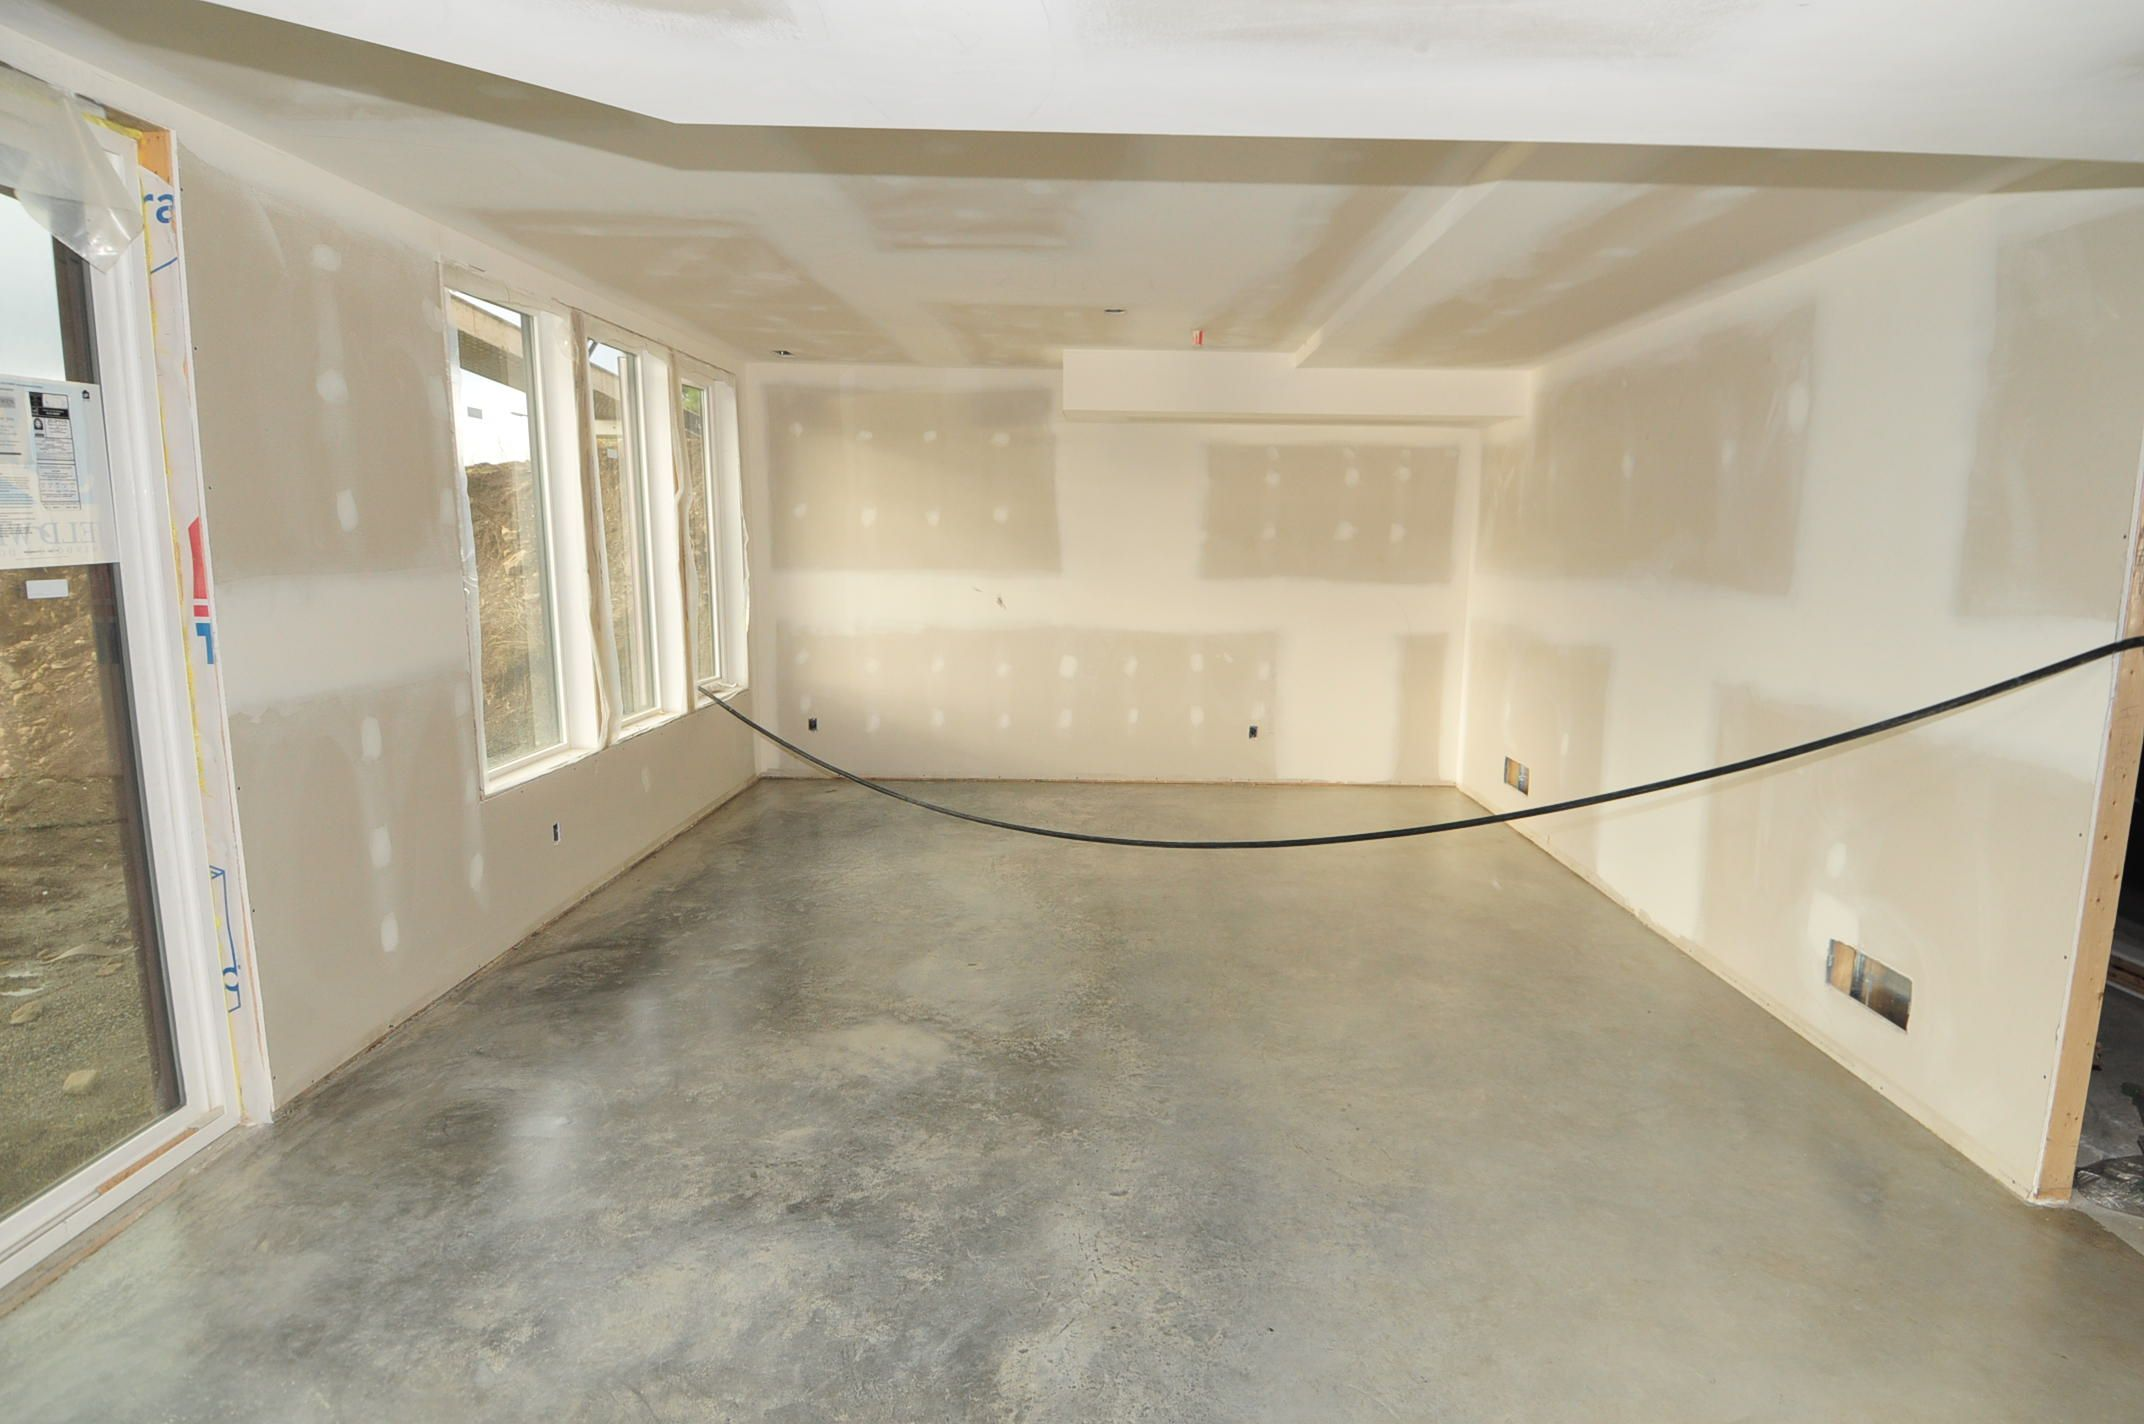 Sealed Cement Floor No Stain Google Search Concrete Kitchen